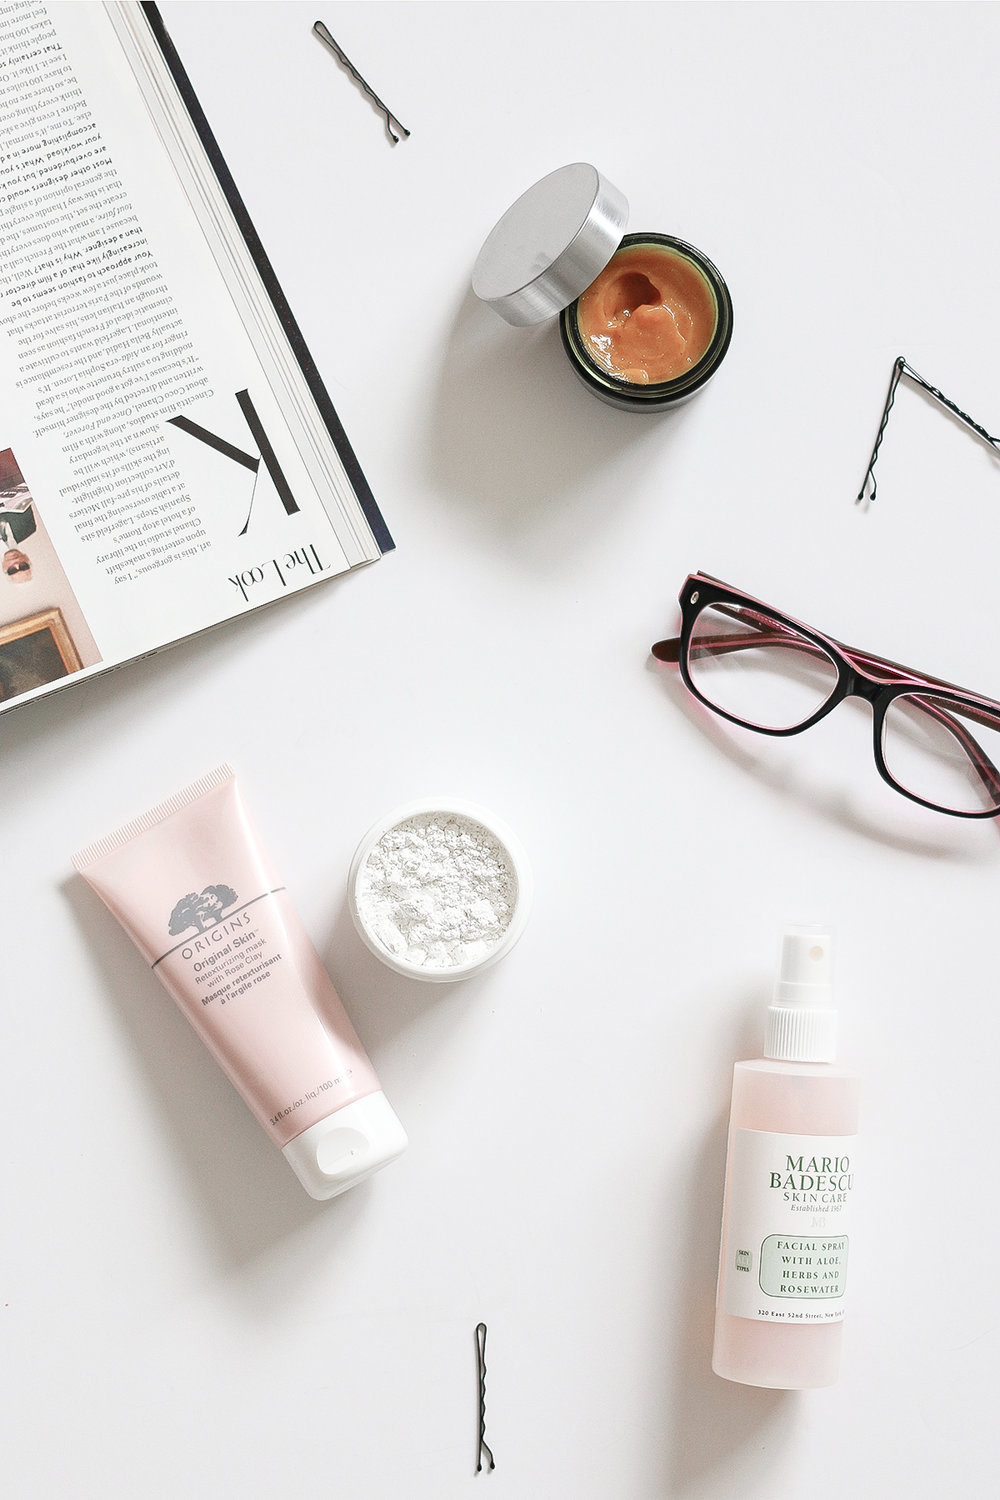 15 Ways To Pamper Yourself Without Spending A Penny | A Girl, Obsessed